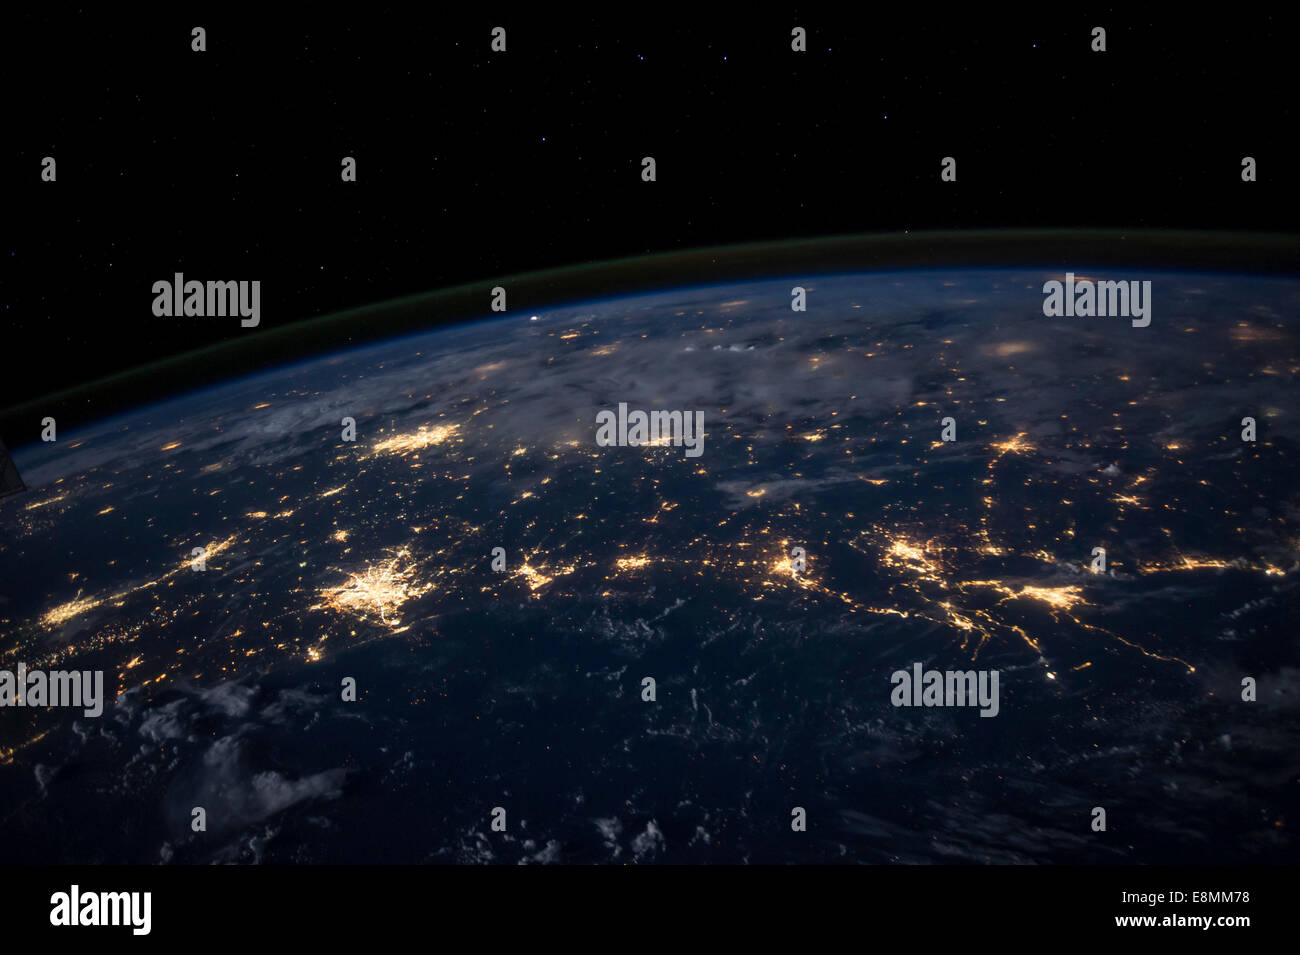 August 9, 2014 - Nighttime image showing city lights in at least half a dozen southern states from some 225 miles - Stock Image